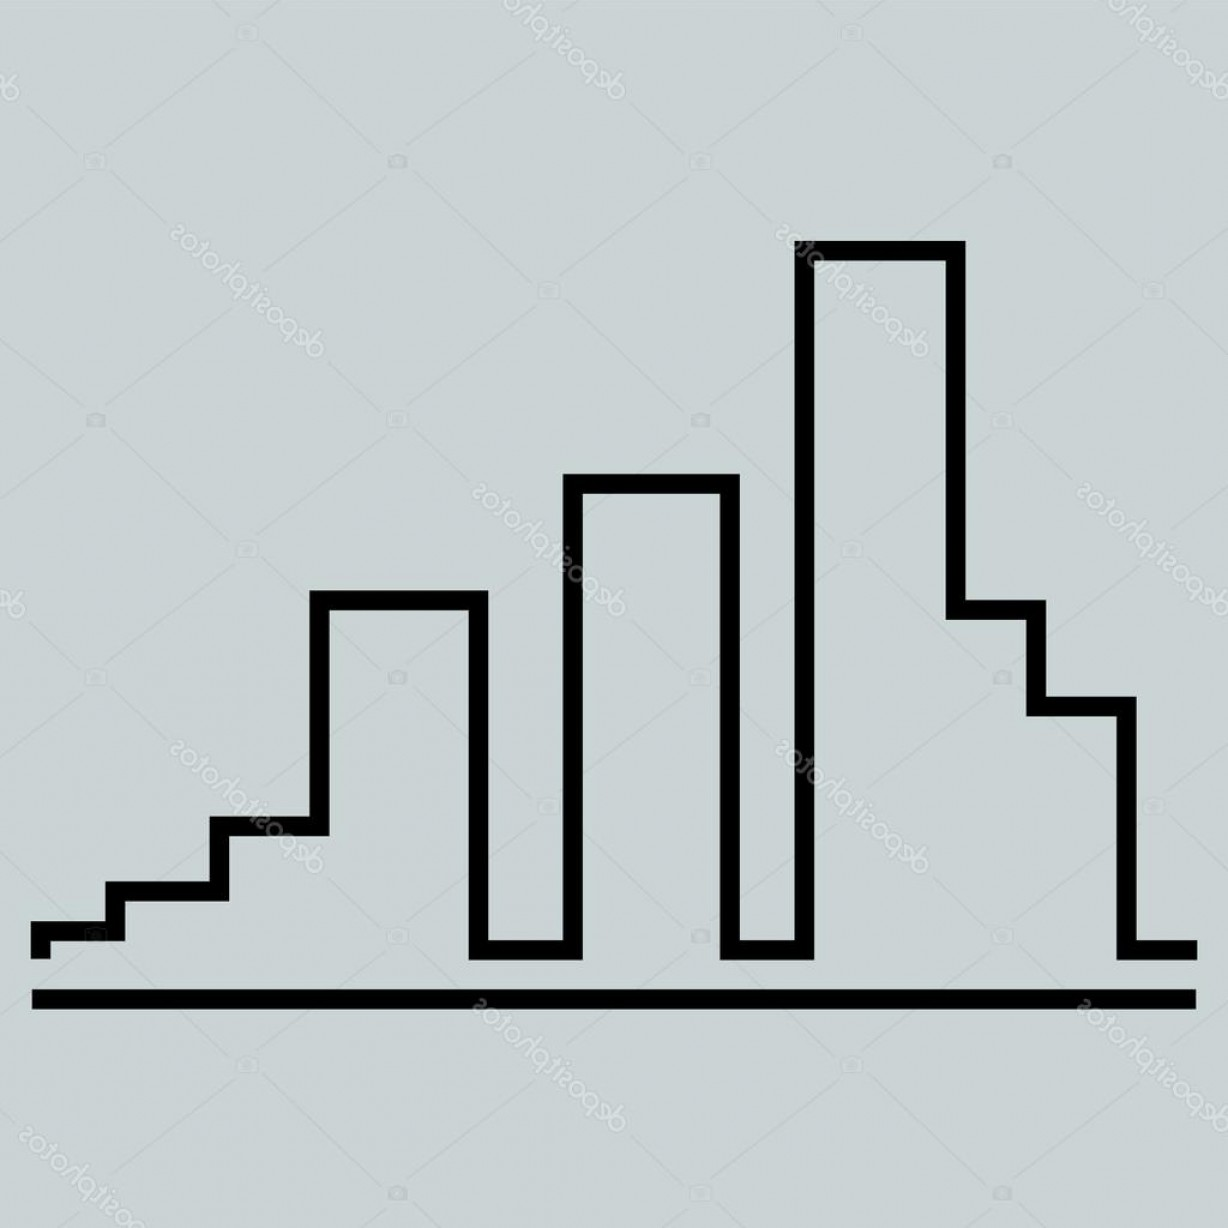 Construction Logos Vector Black And White: Stock Illustration Vector City Buildings Building Construction